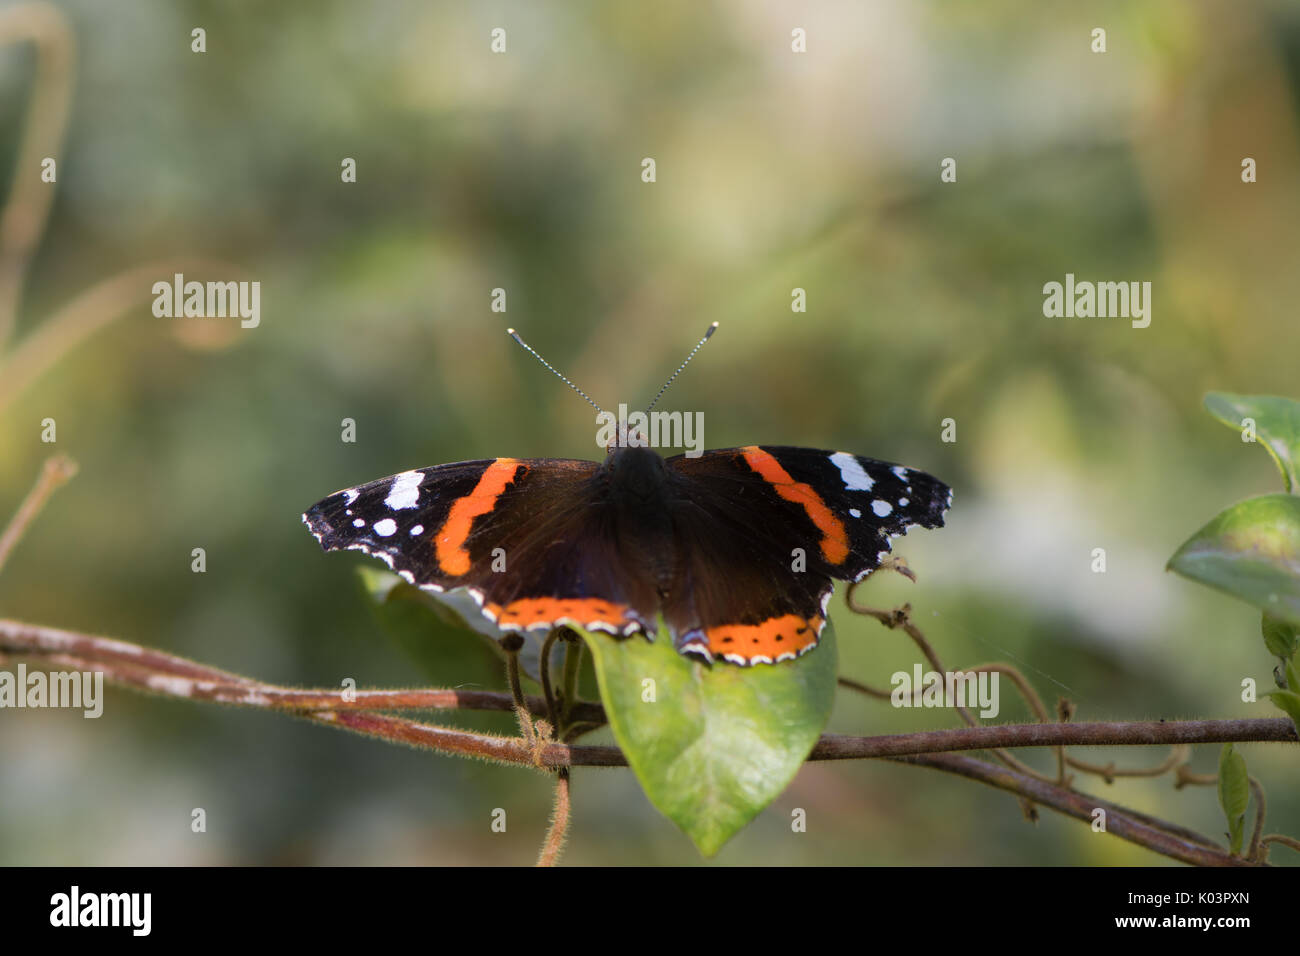 Red admiral butterfly (Vanessa atalanta) with wings open. Insect in the family Nymphalidae at rest showing orange and white markings on upperside - Stock Image